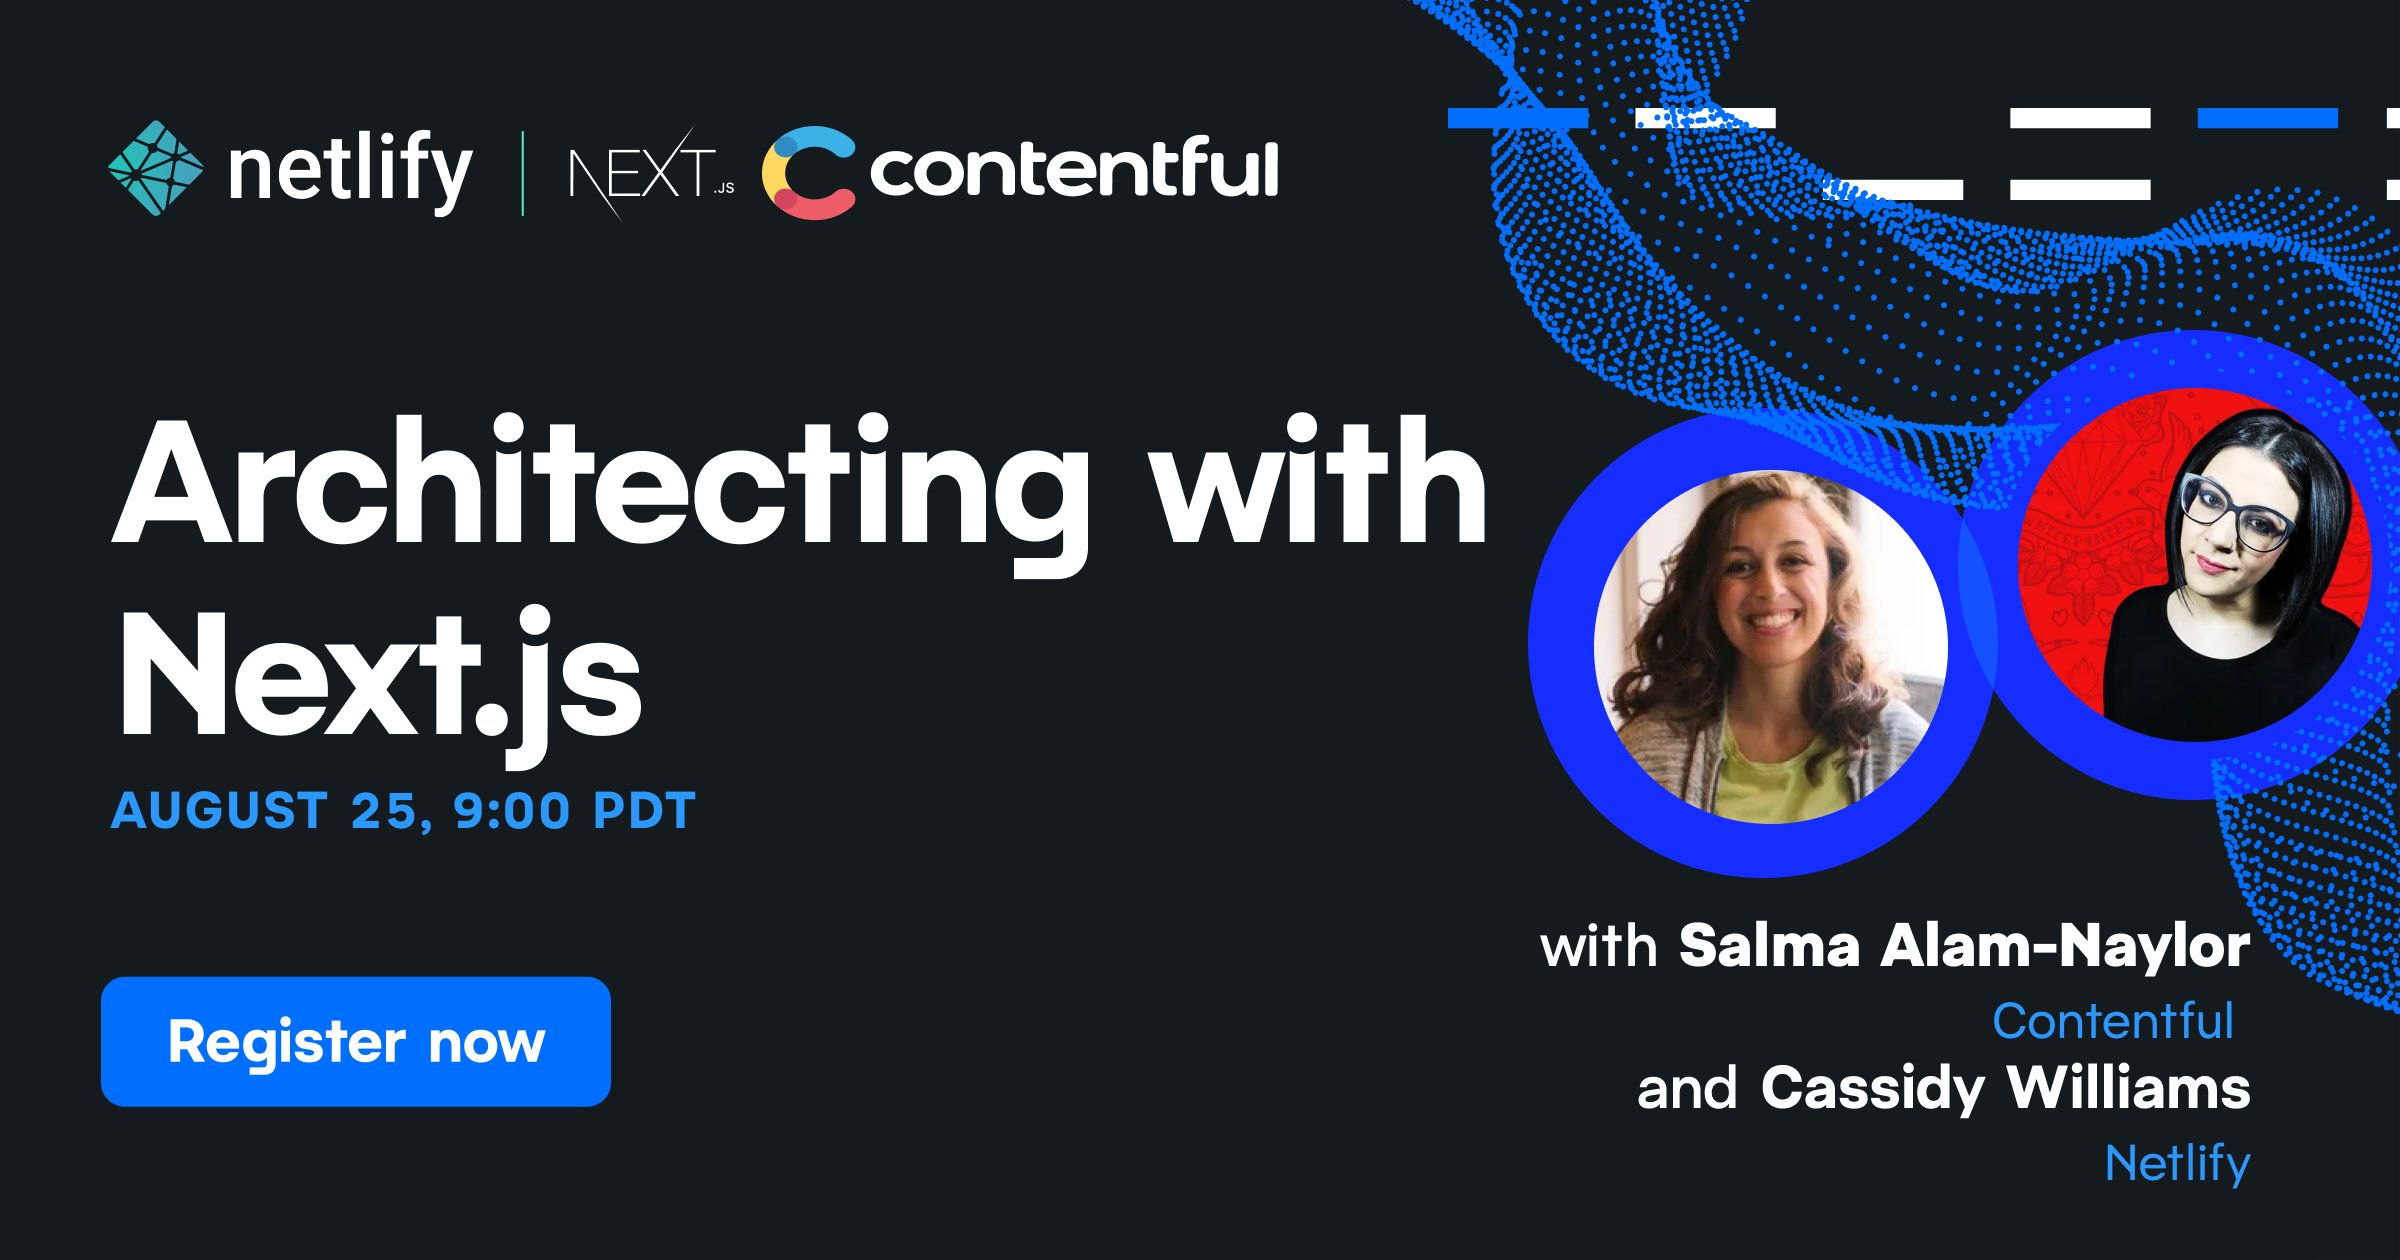 """A thumbnail of Salma Alam-Naylor and Cassidy Williams with the title """"Architecting with Next.js"""" and the Netlify, Next.js and Contentful logos."""